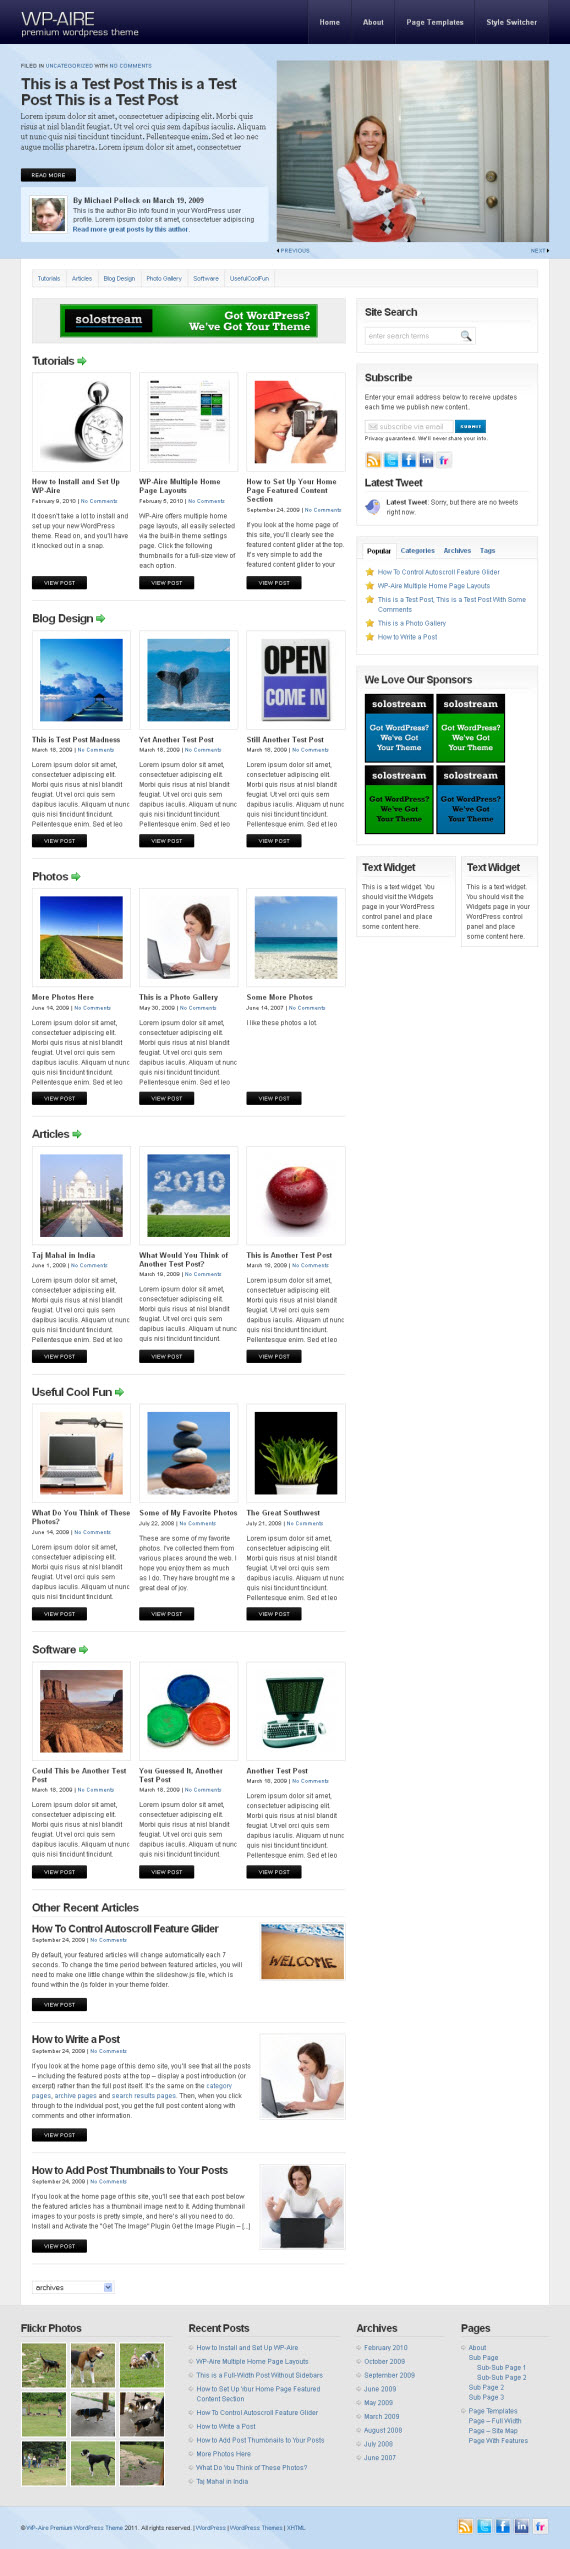 WP-Aire WordPress Theme